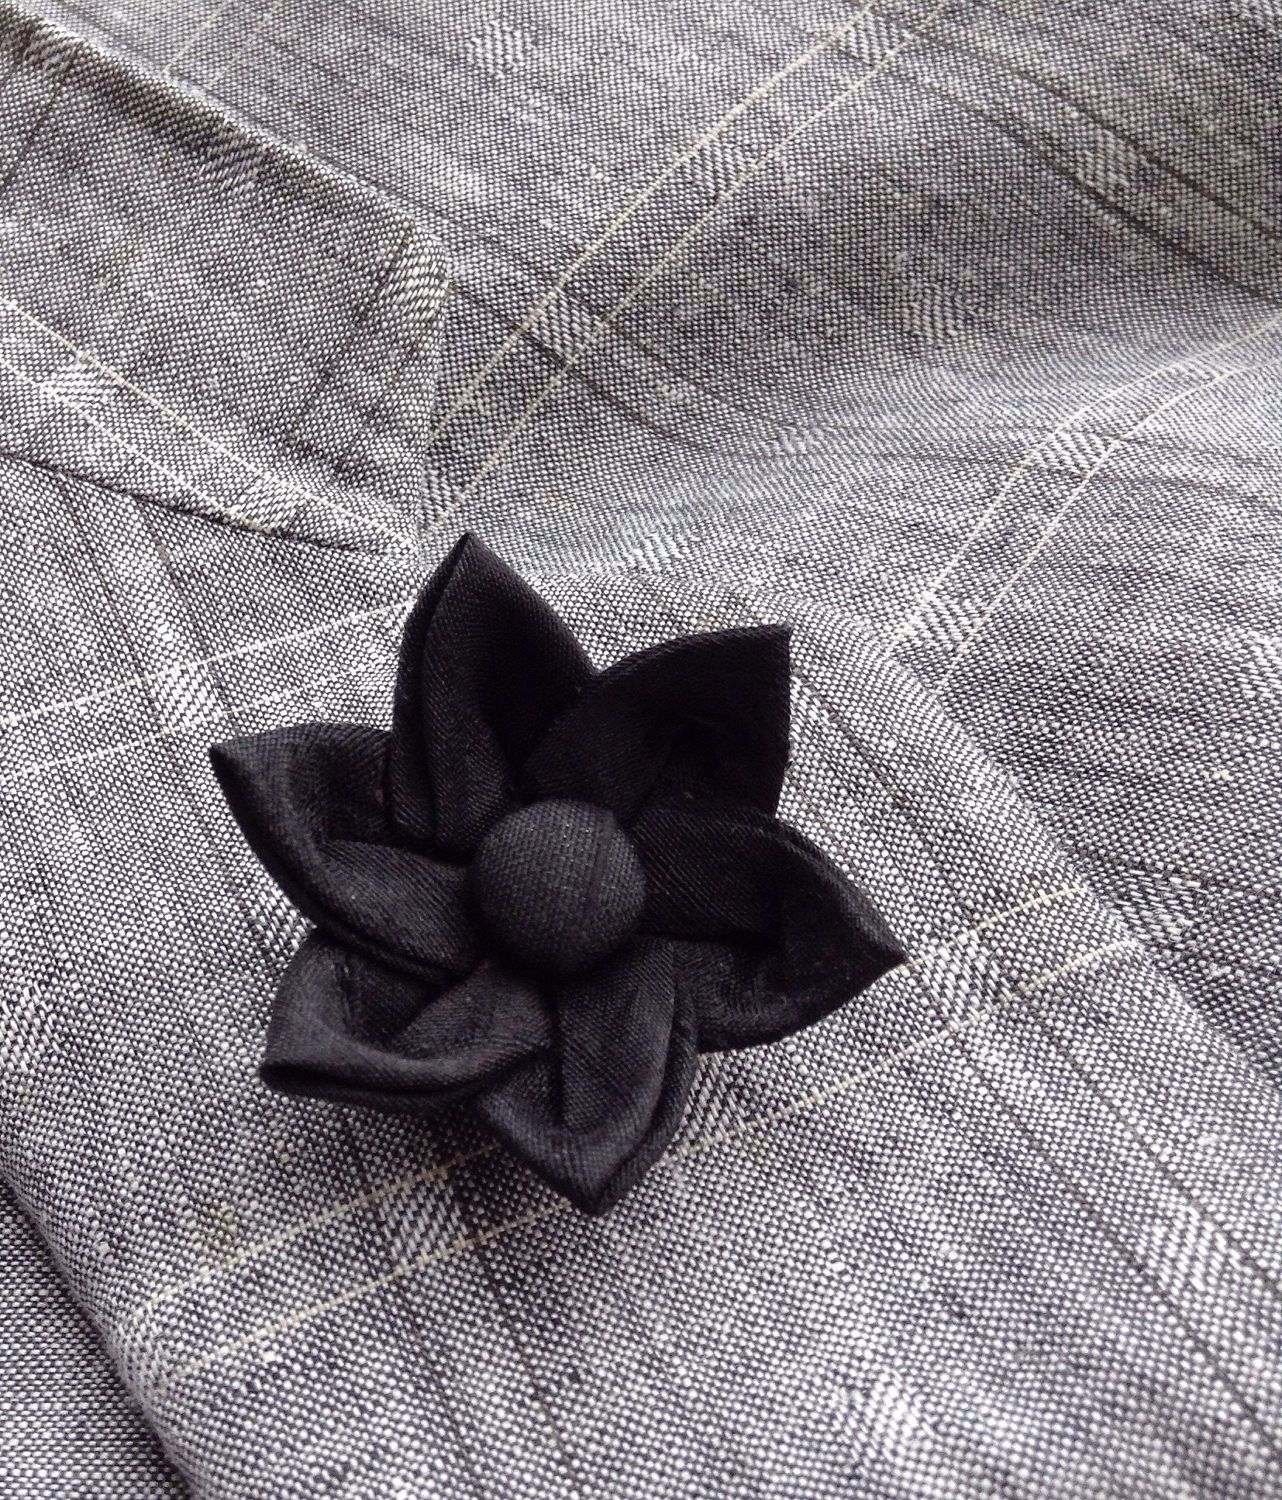 Silk Boutonniere Mens Lapel Pin Flower Lapel Pin Black Lapel Flower Kanzashi Brooch Custom Lapel Pins Men Groomsman Graduation Gift For Him by exquisitelapel on Etsy https://www.etsy.com/listing/506617546/silk-boutonniere-mens-lapel-pin-flower